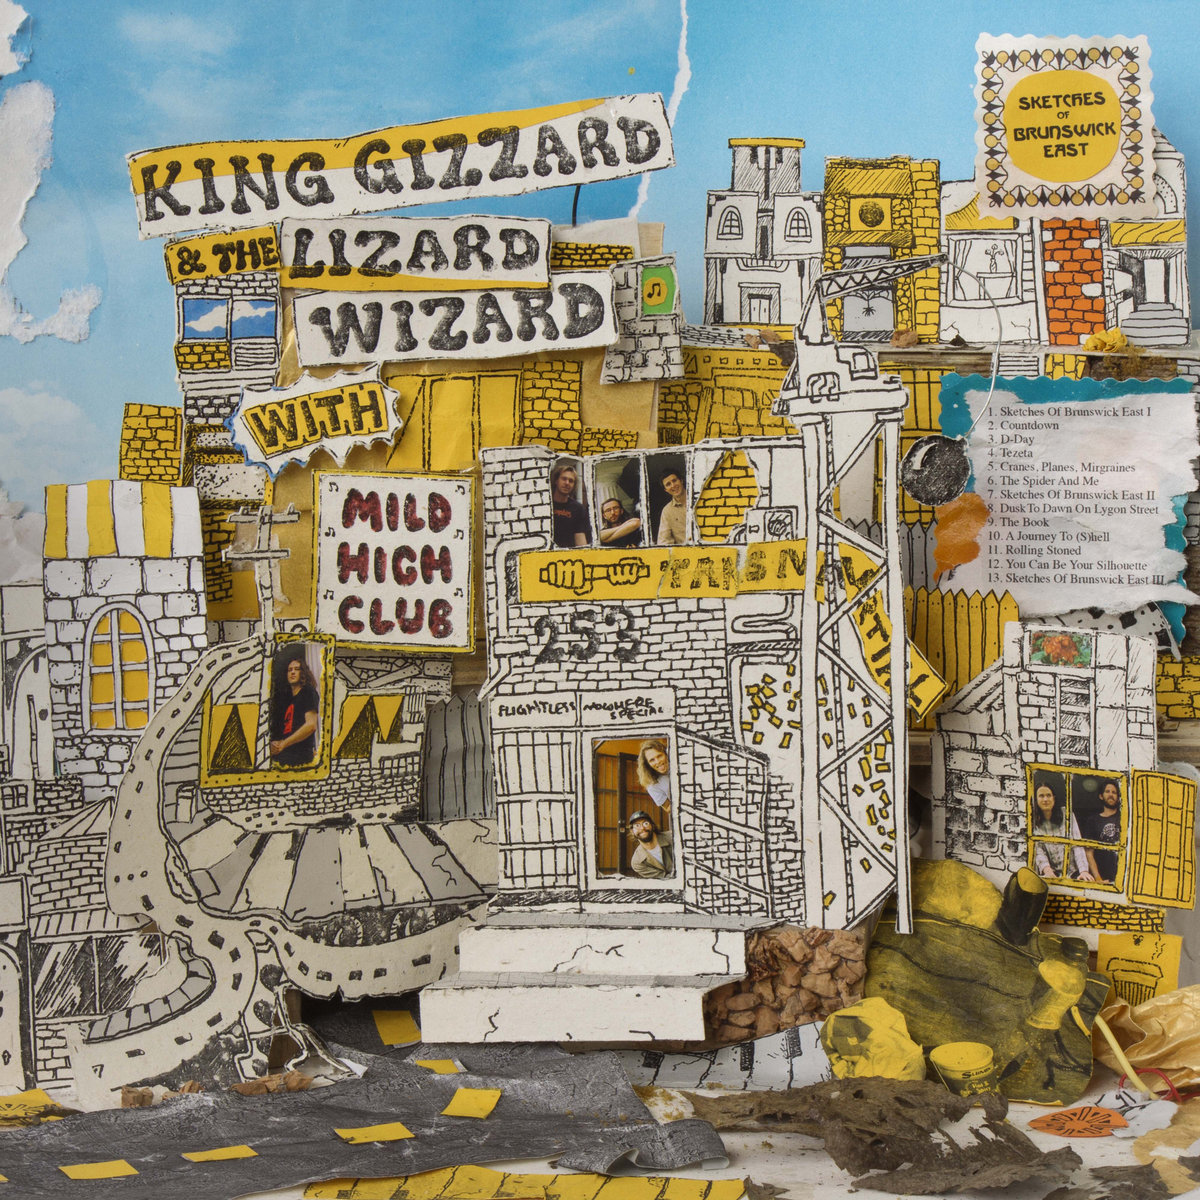 By King Gizzard The Lizard Wizard With Mild High Club